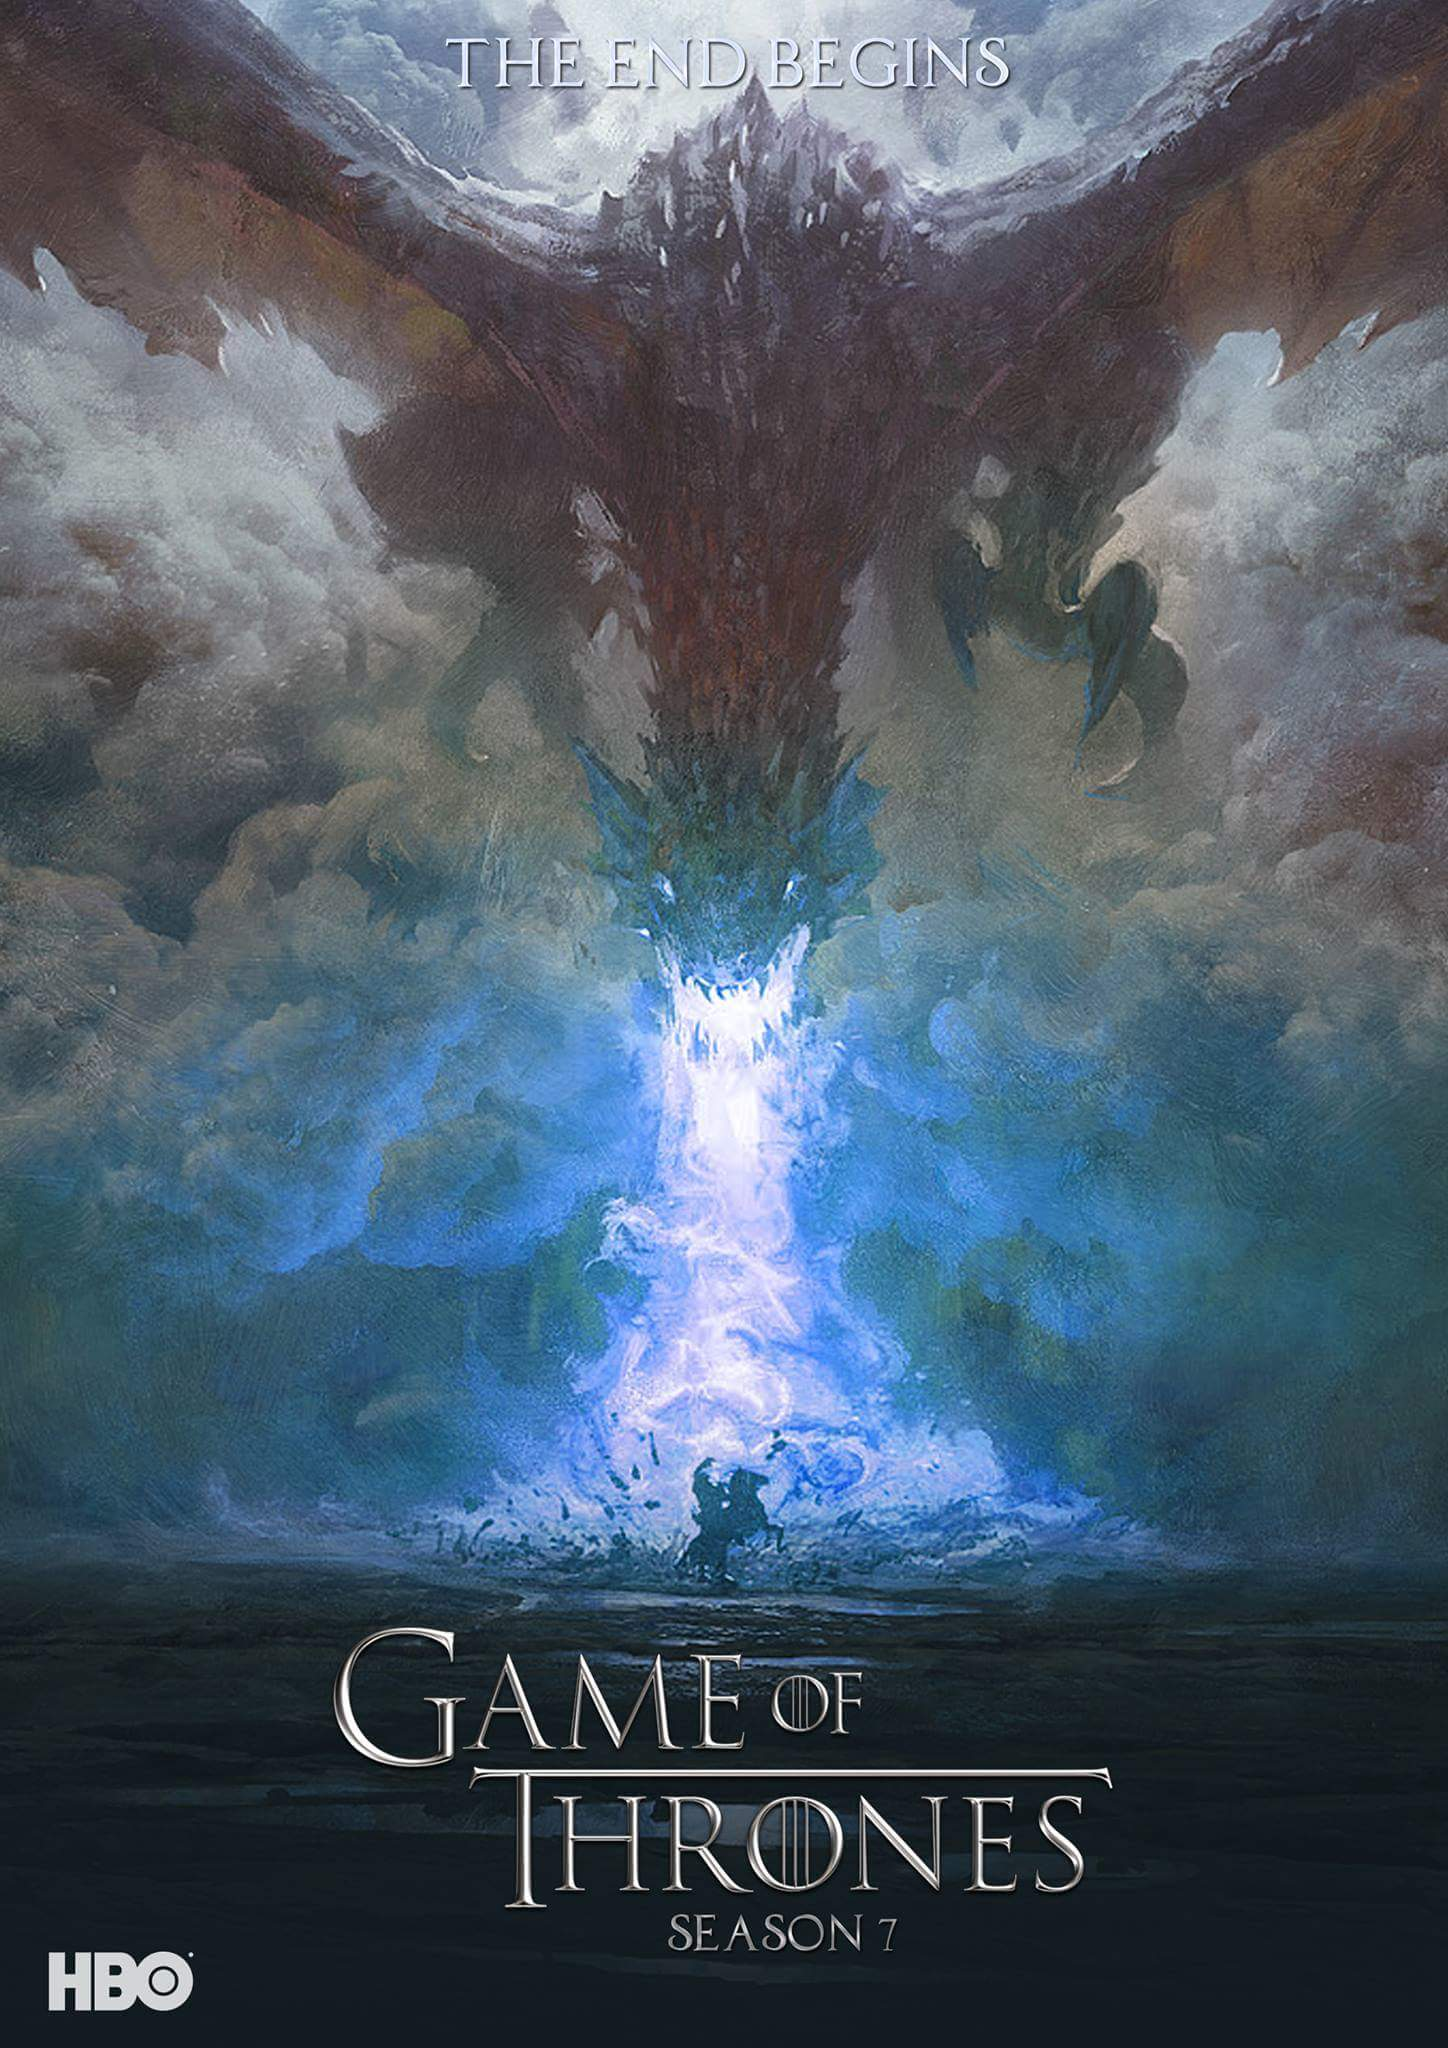 Wight Dragon - GoT Season 7 Fan Poster